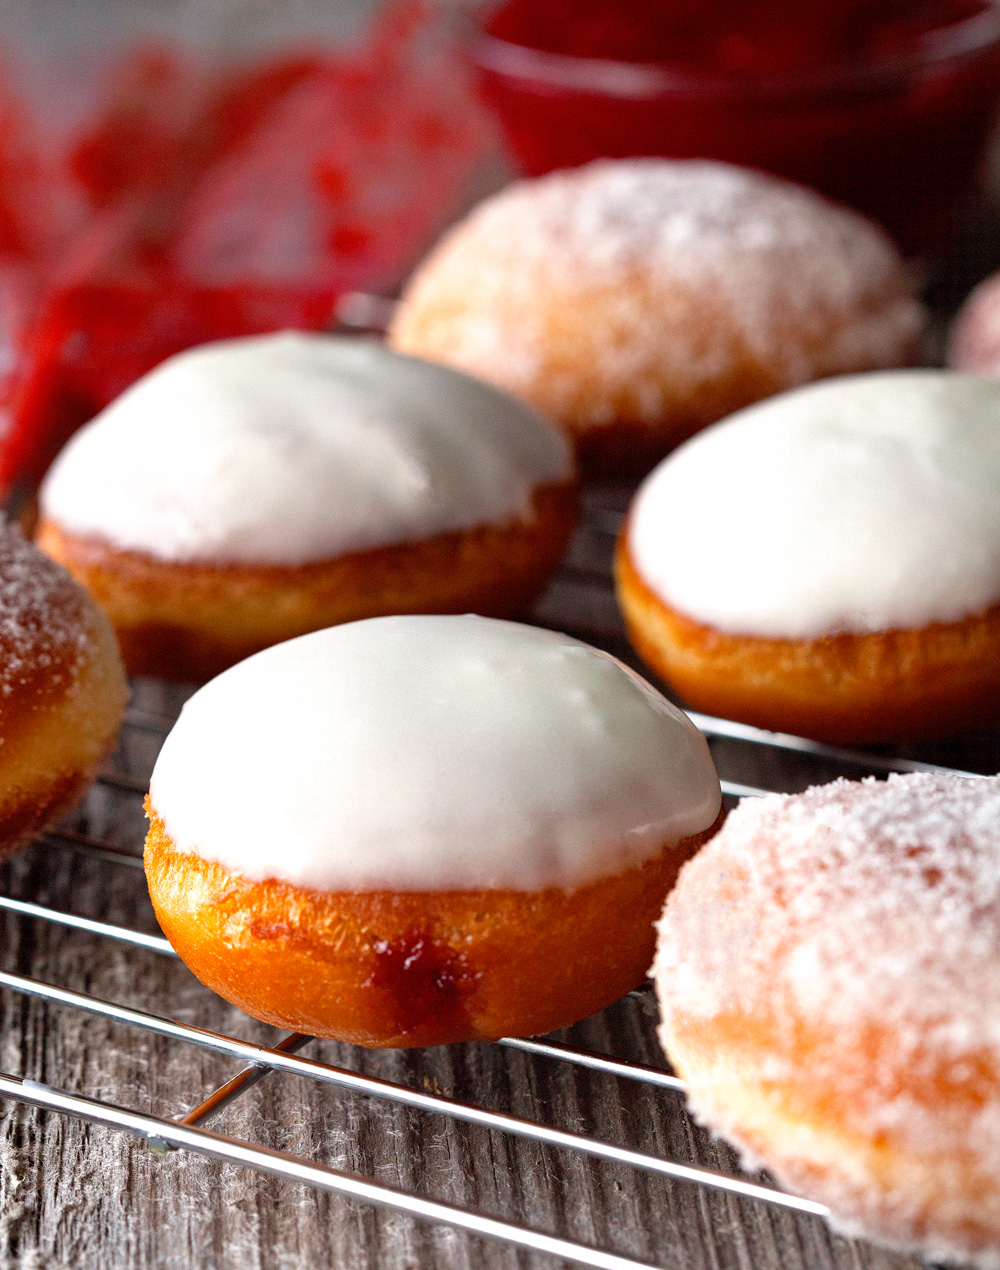 Homemade Jelly Doughnuts by Deliciously Yum!